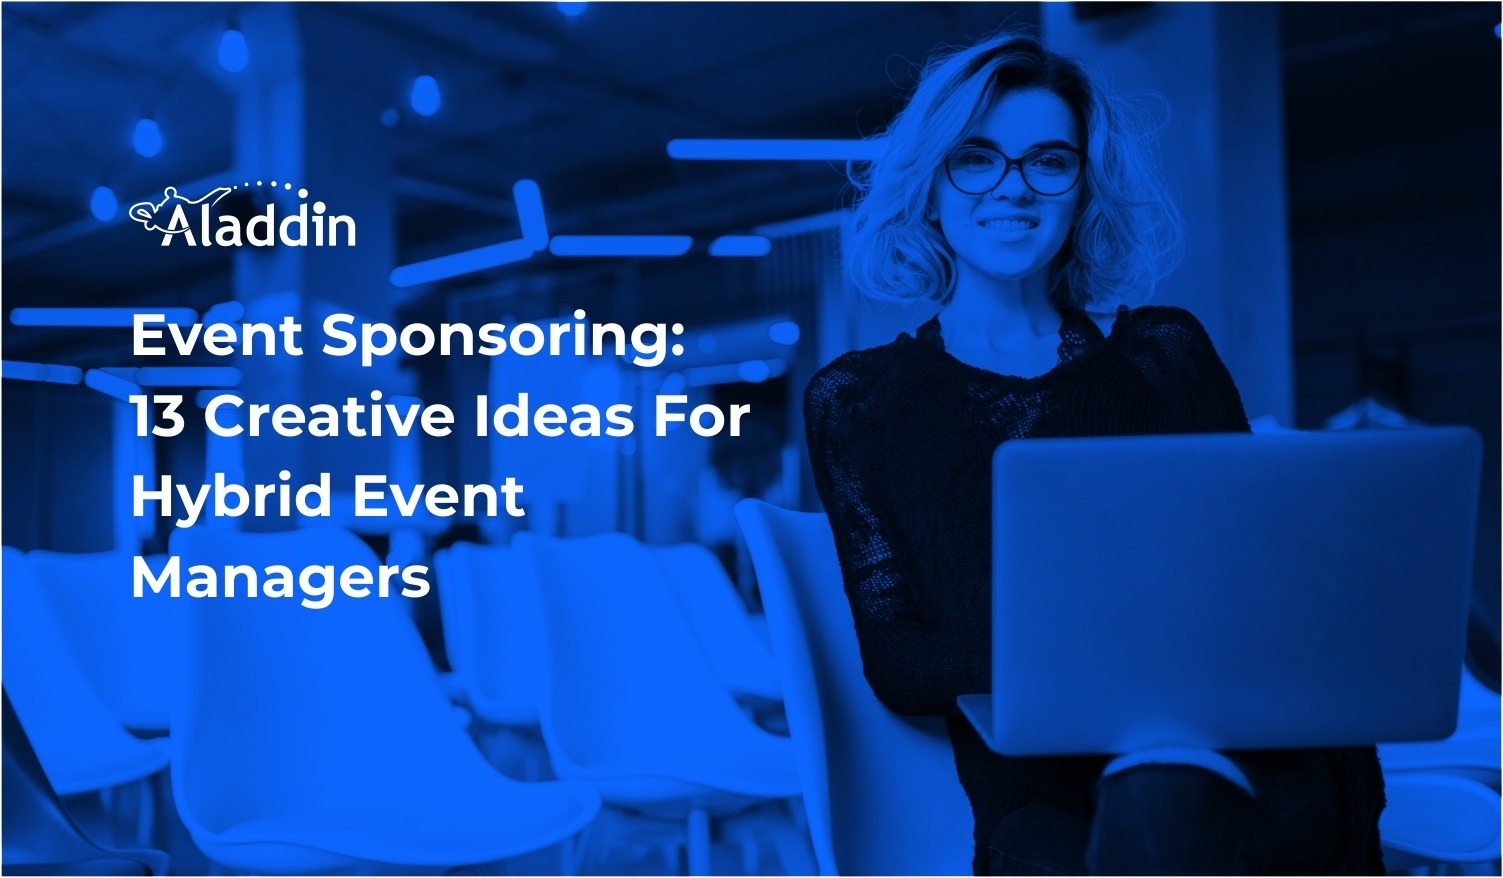 Event Sponsoring: 13 Creative Ideas For Hybrid Event Managers